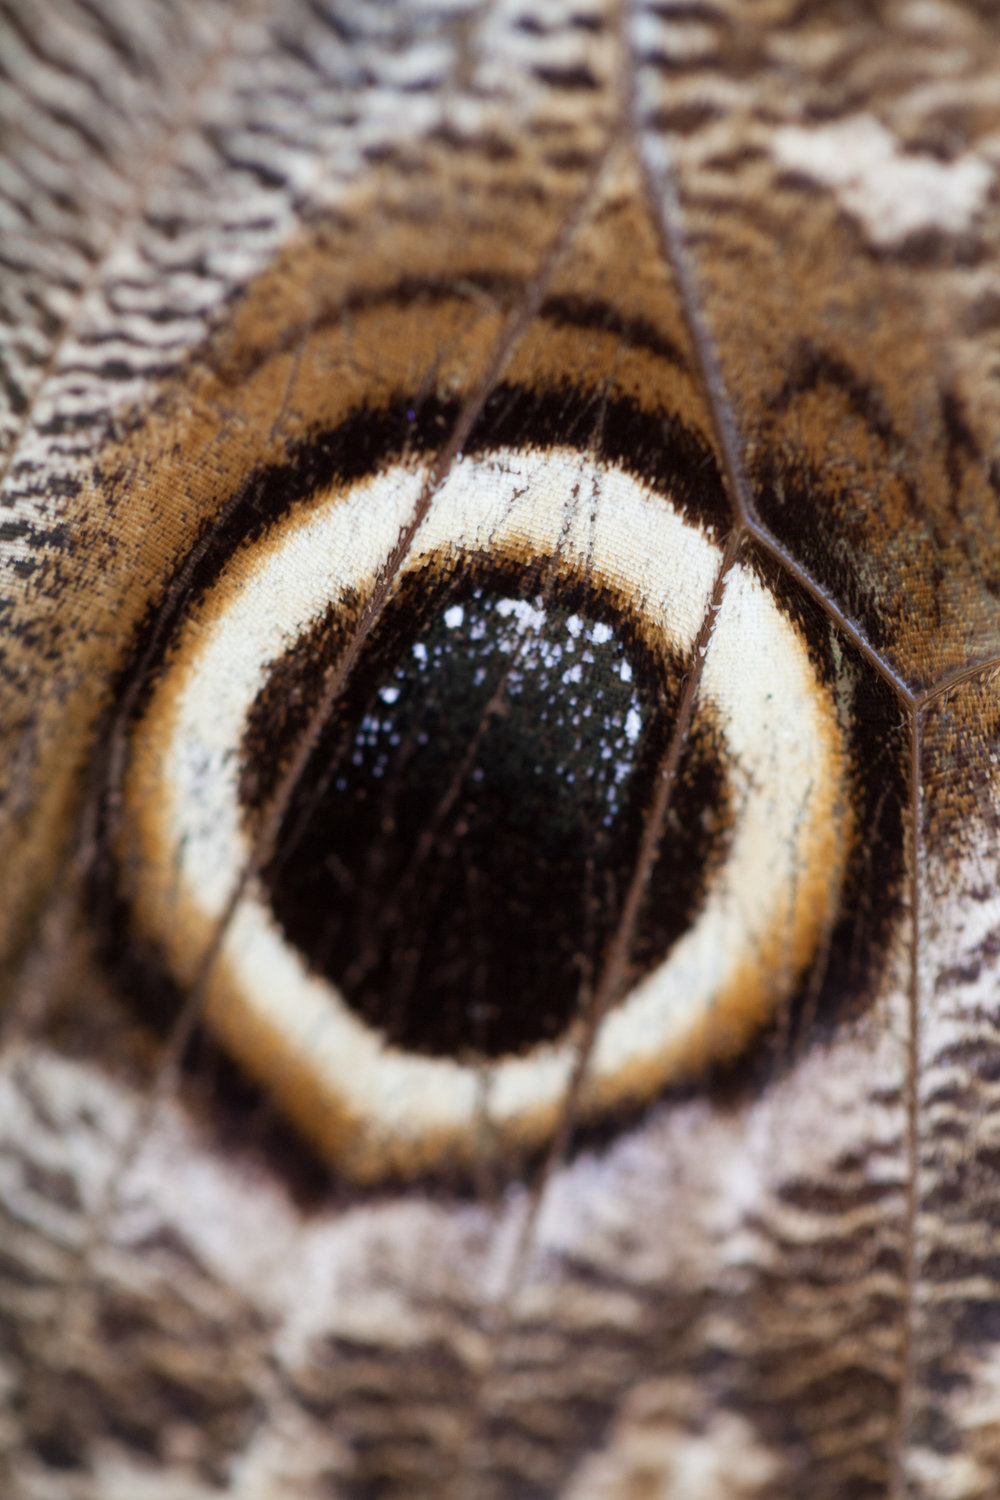 The eyespots on the Caligo eurilochus sulanus or Giant Forest Owl butterfly is one of my favorite butterfly characteristics to photograph up close.